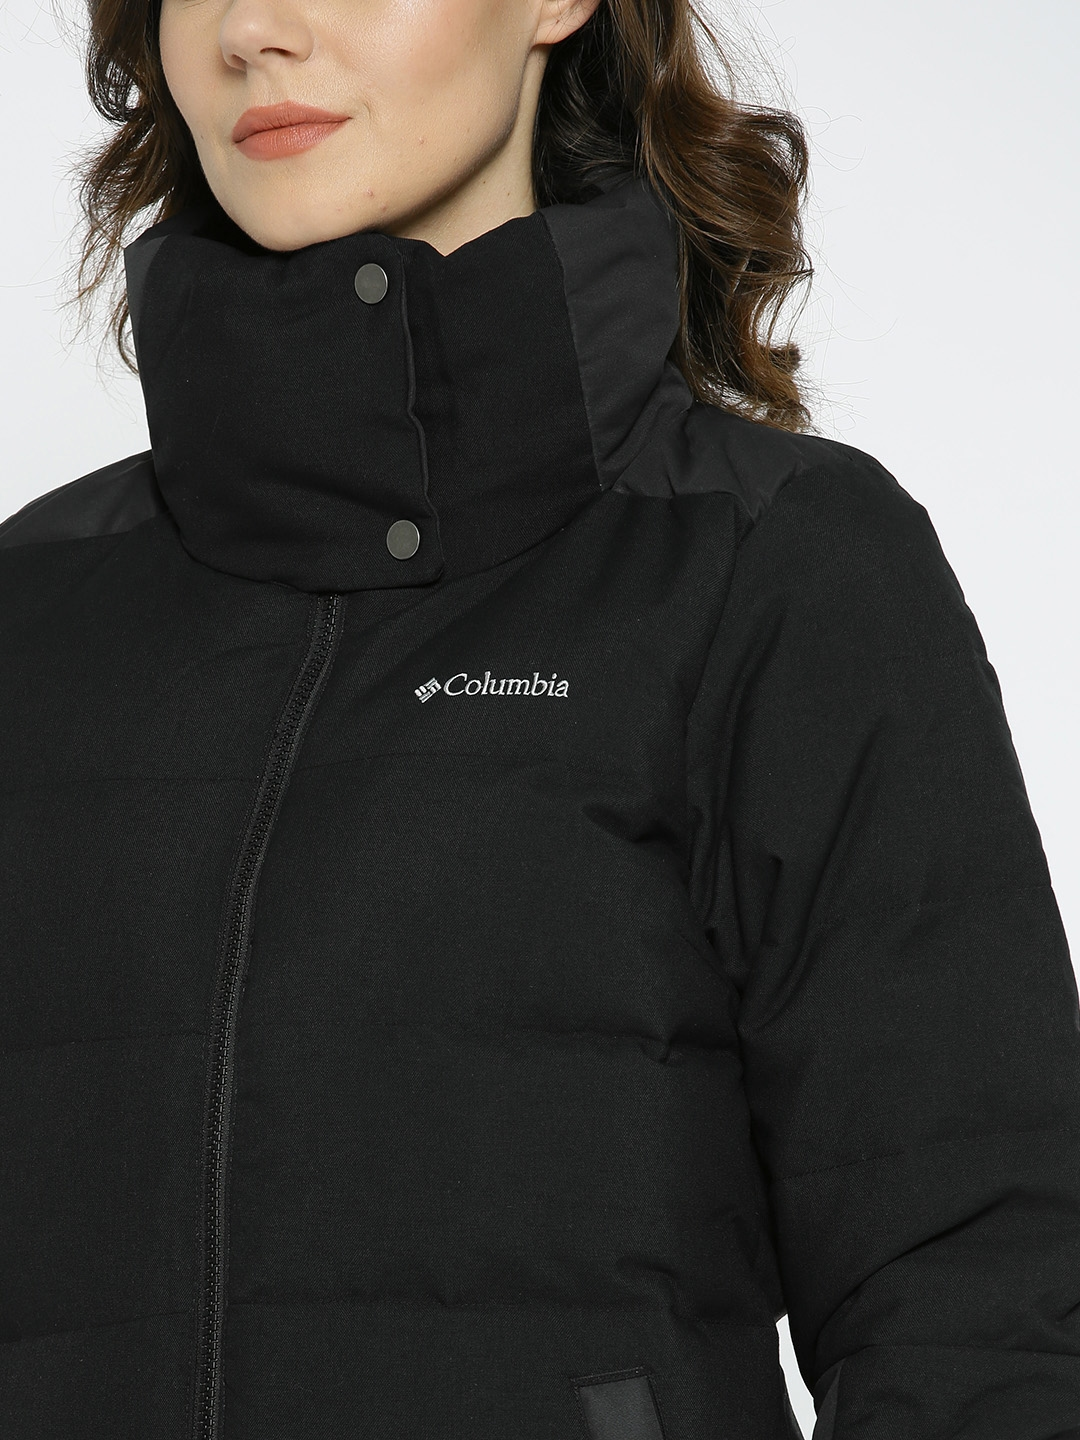 Buy Columbia Women Outdoor Winter Challenger Jacket - Jackets for ... 05beb235b